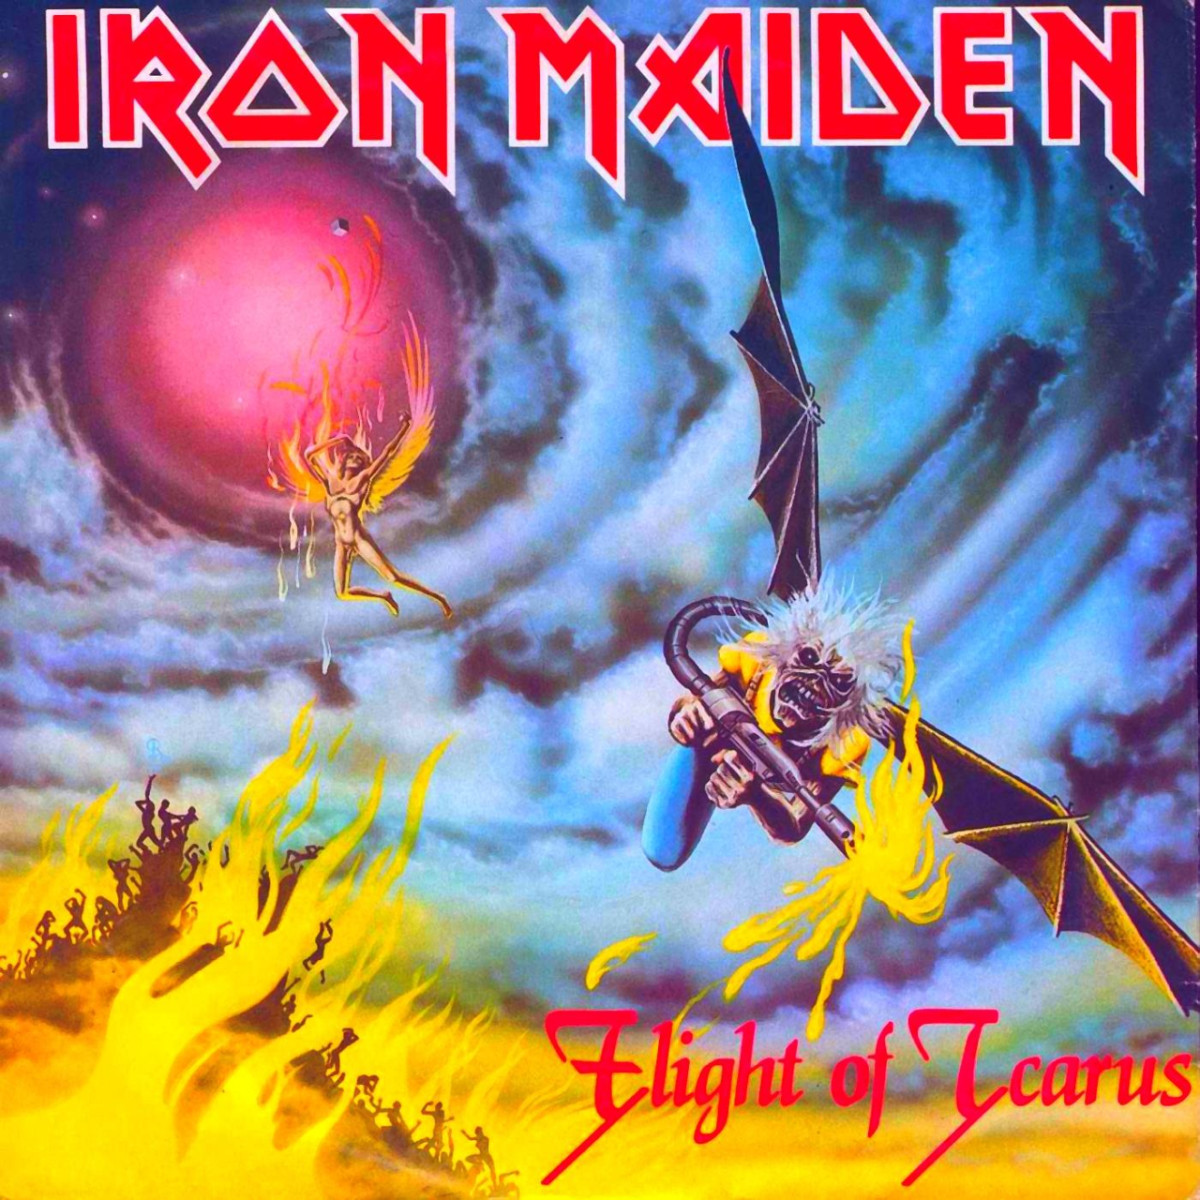 "Iron Maiden ""Flight of Icarus"" EMI 12 EMI P5378 12"" Vinyl Single UK pressing (1983) Picture Sleeve Art by Derek Riggs"